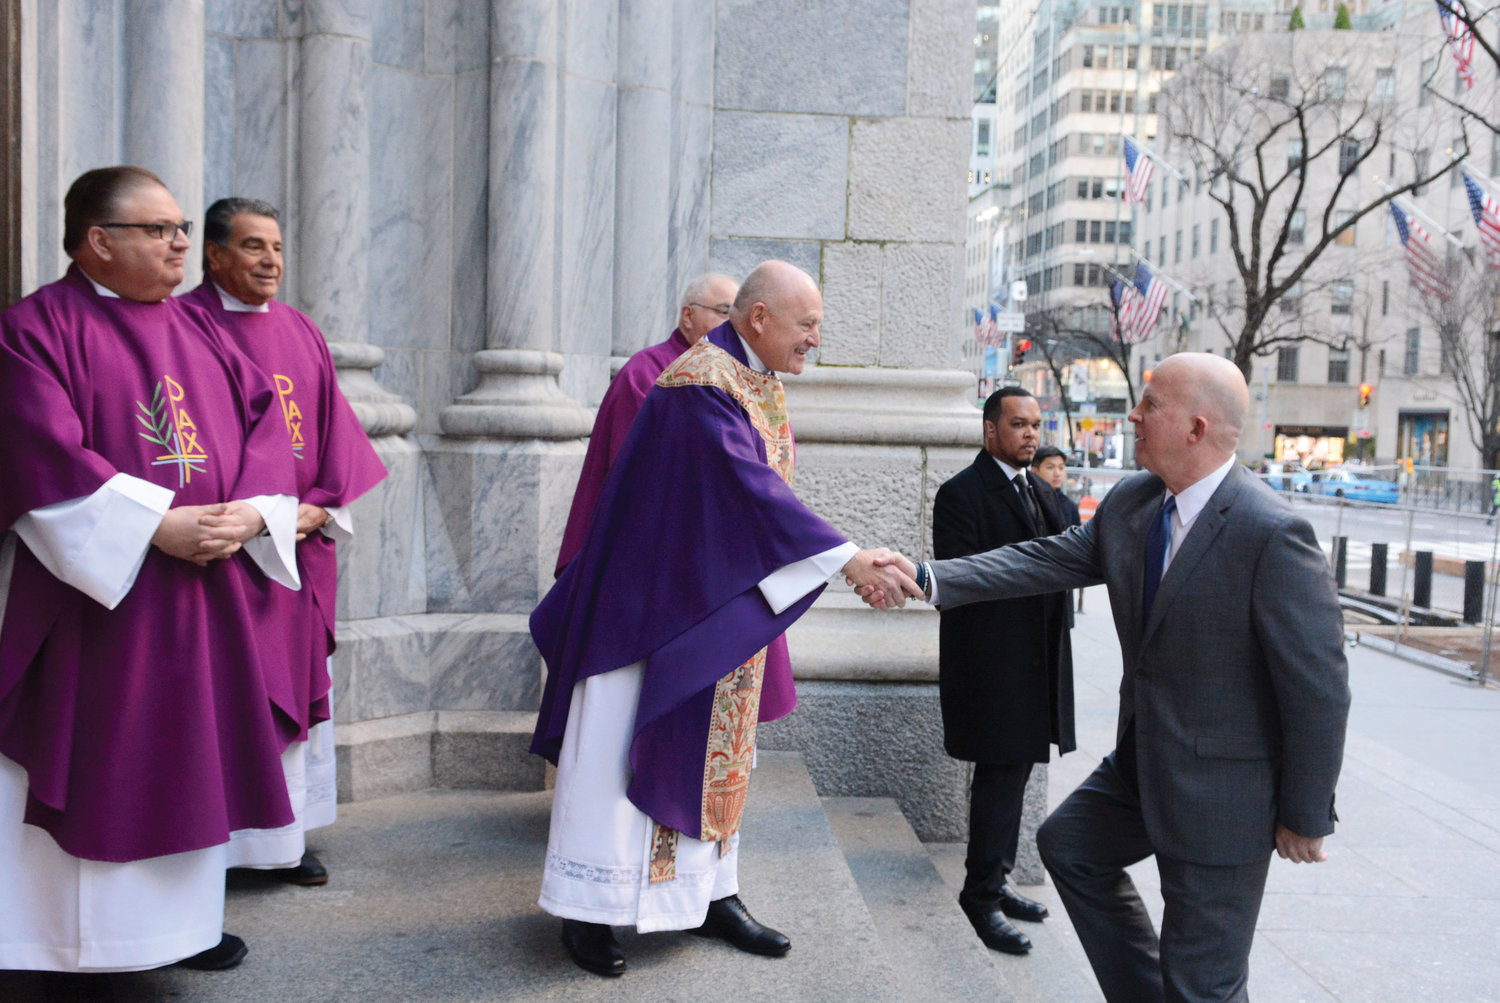 Msgr. Robert Ritchie, rector of St. Patrick's Cathedral and principal celebrant of the Mass, welcomes NYPD Commissioner James O'Neill to the cathedral.